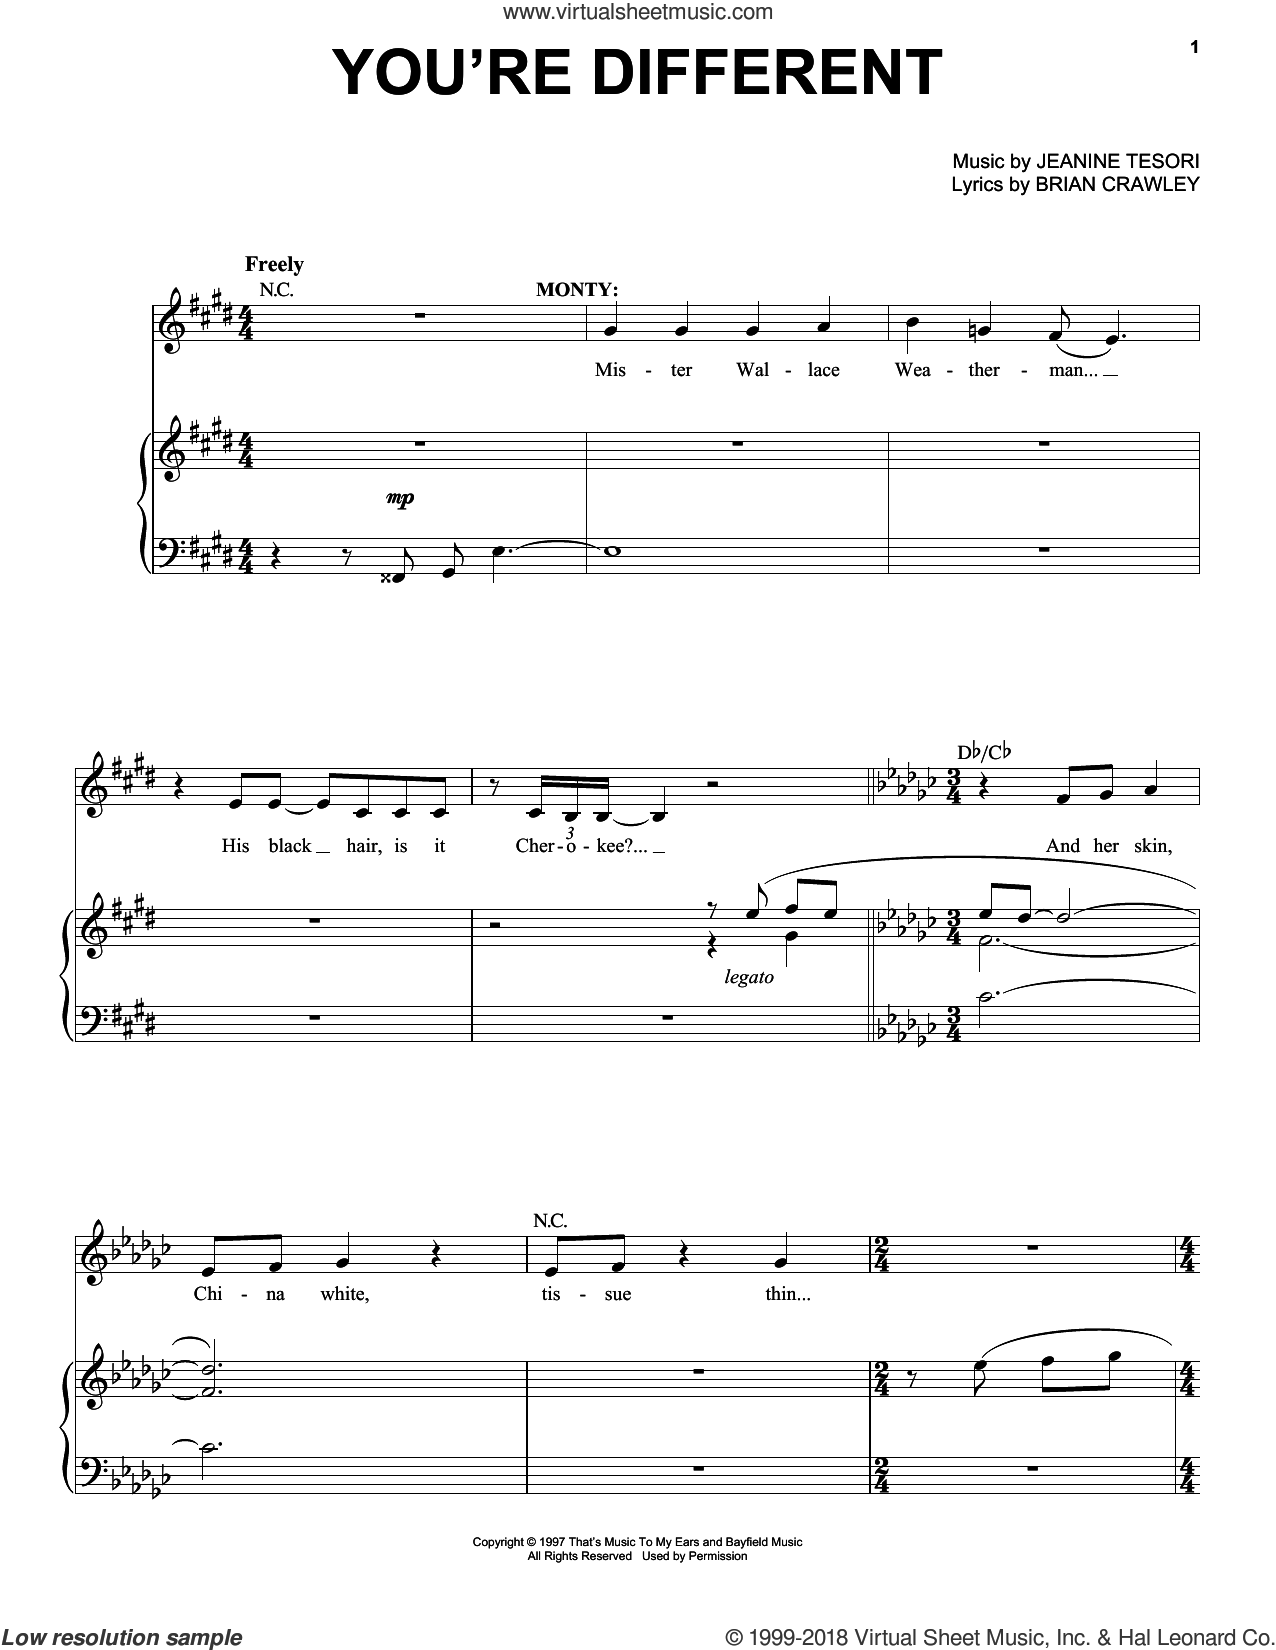 You're Different sheet music for voice and piano by Jeanine Tesori and Brian Crawley, intermediate skill level